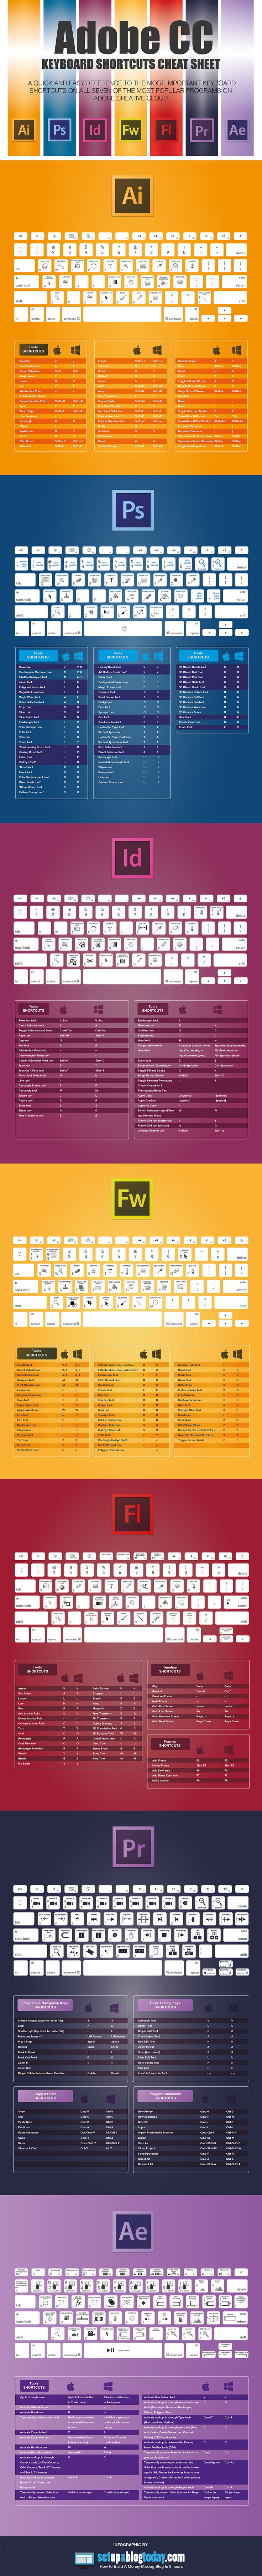 For Designers: The Ultimate Adobe Creative Cloud Keyboard Shortcuts Cheat Sheet - DesignTAXI.com